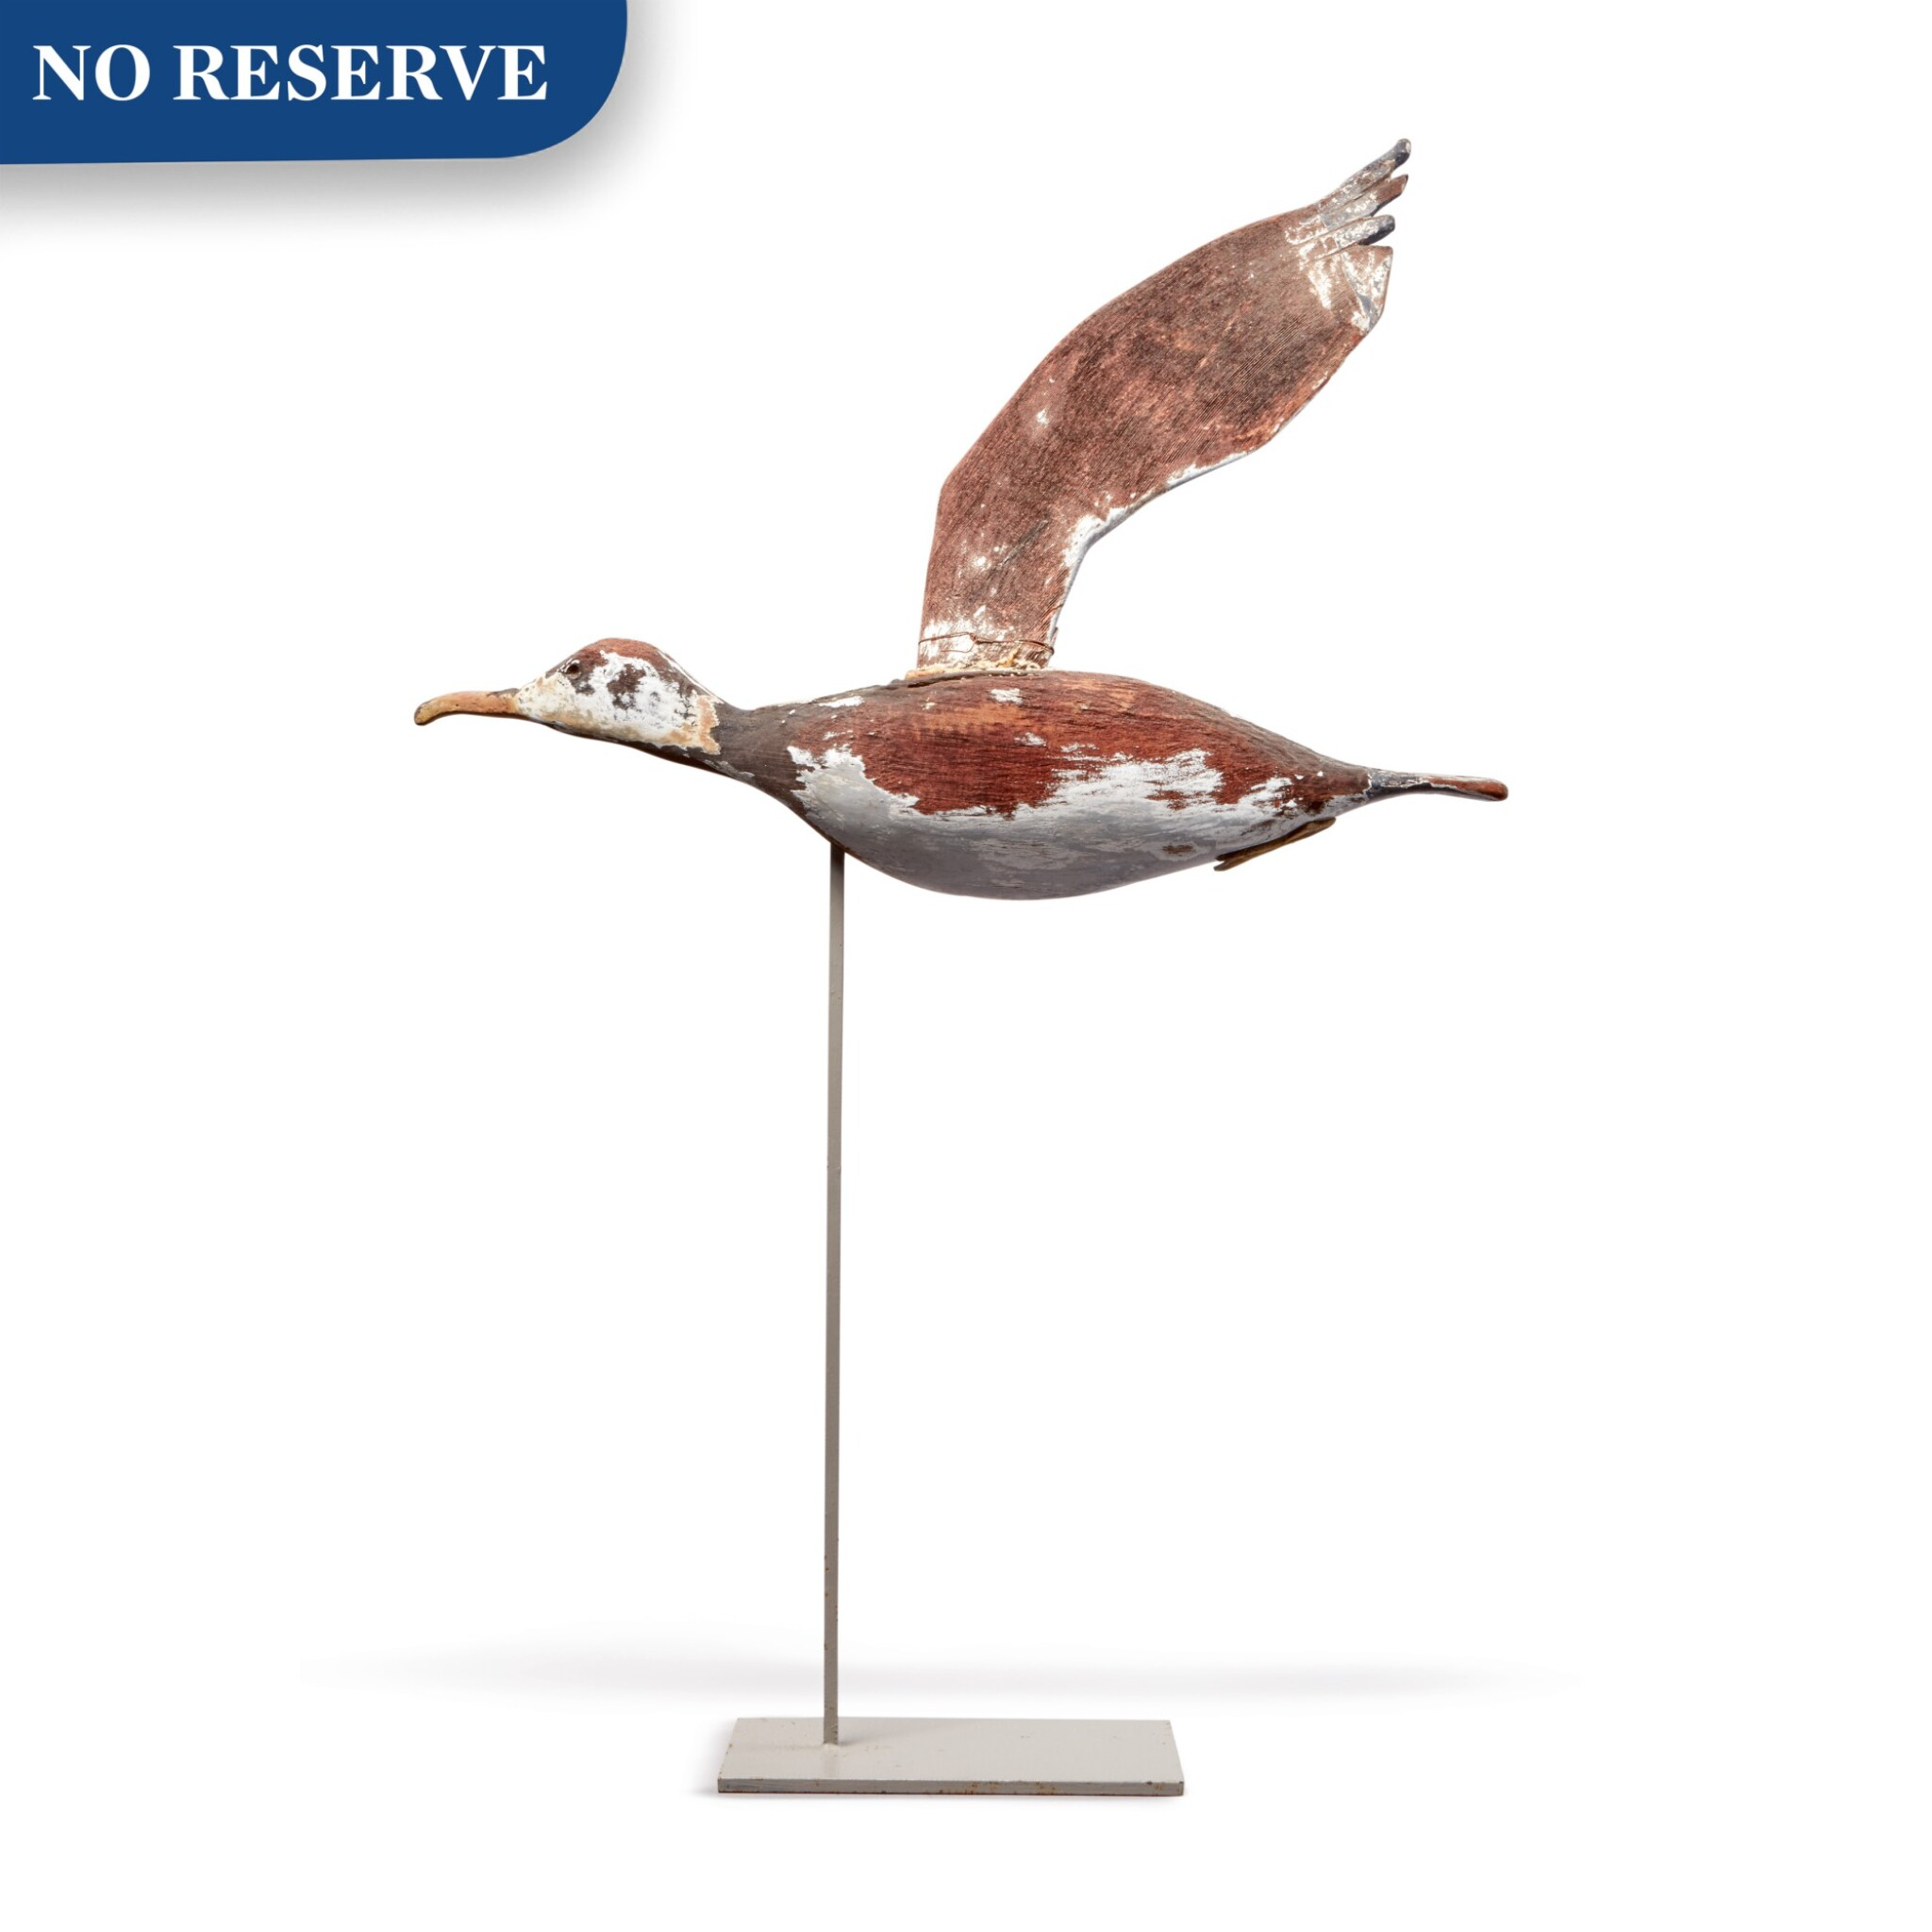 American Carved and Paint-Decorated Wooden Seagull Weathervane, circa 1910-1920